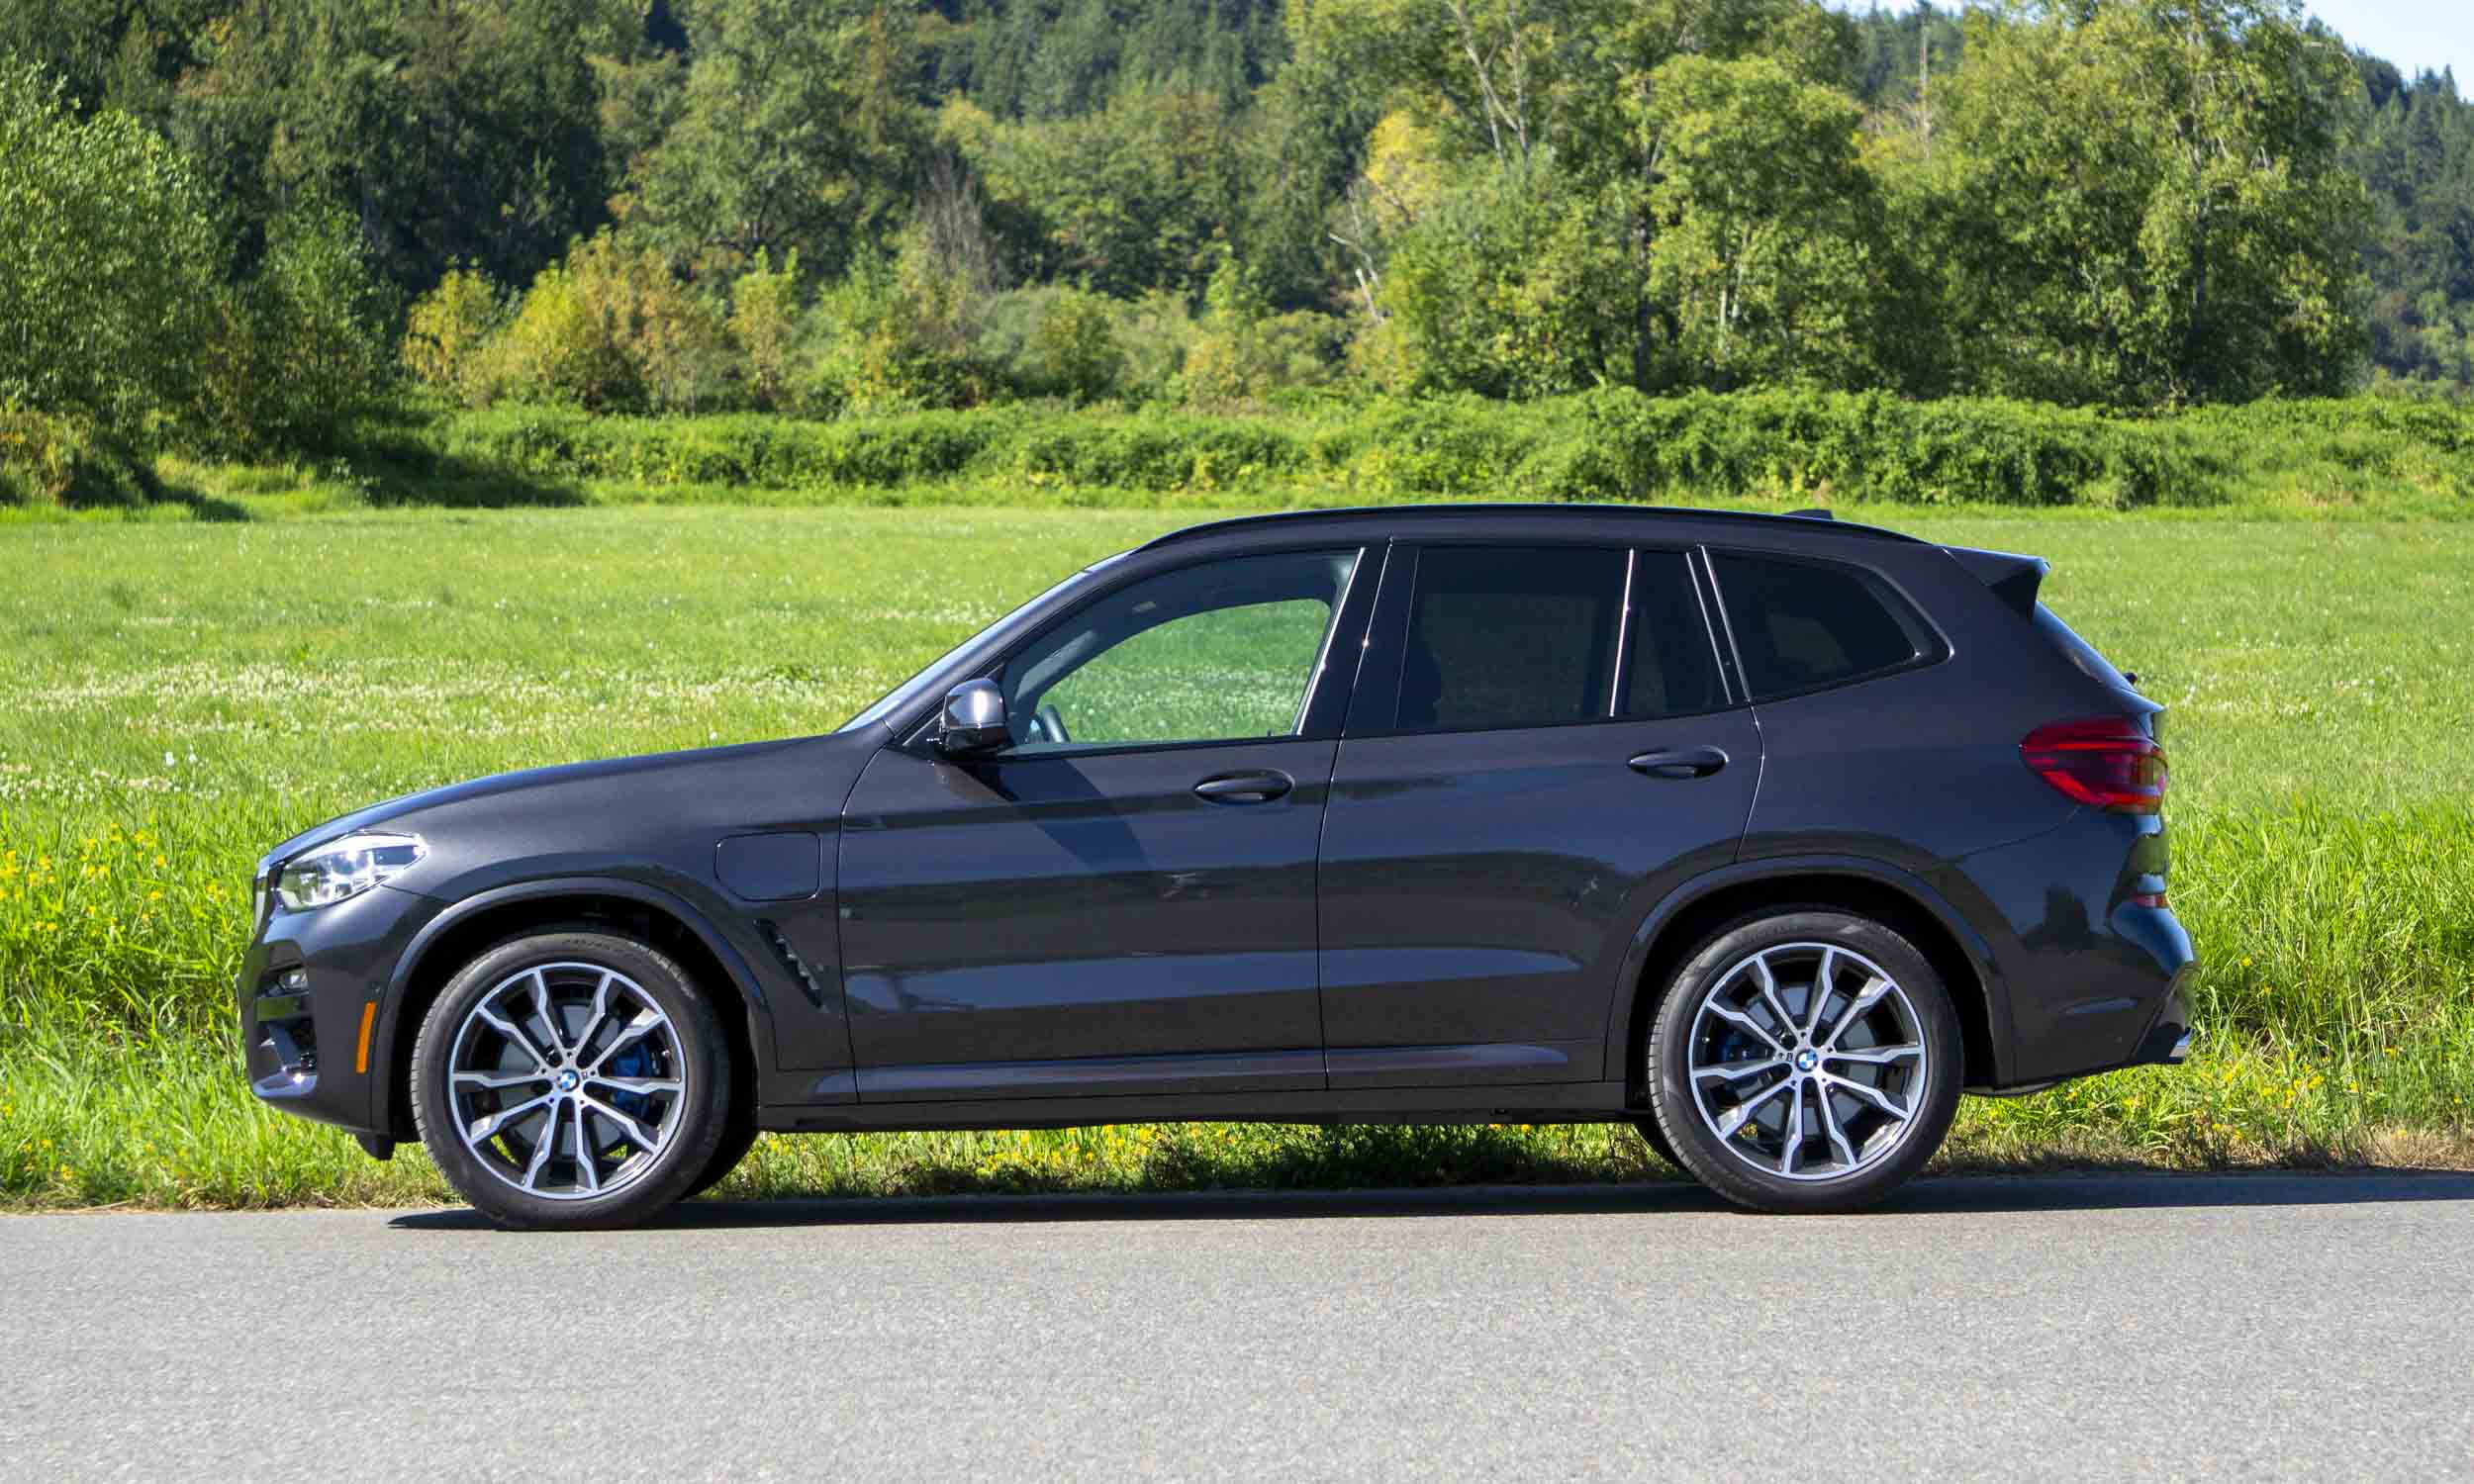 2020 Bmw X3 Xdrive30e Plug In Hybrid Review And Gallery Autonxt